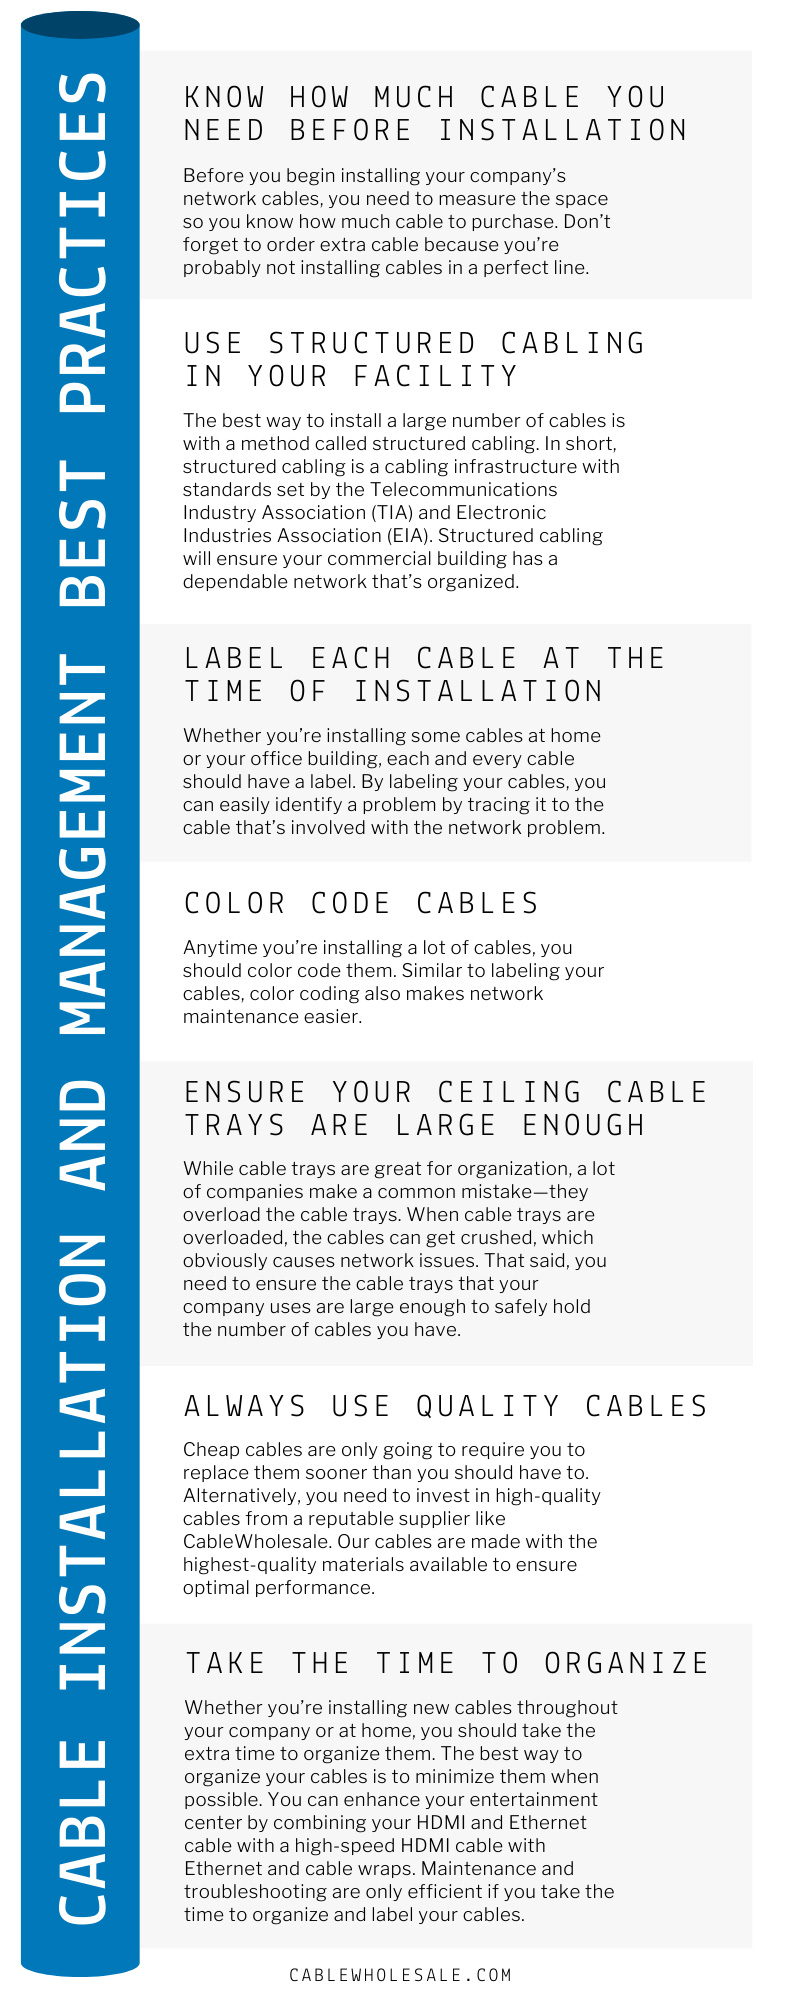 Cable Installation and Management Best Practices